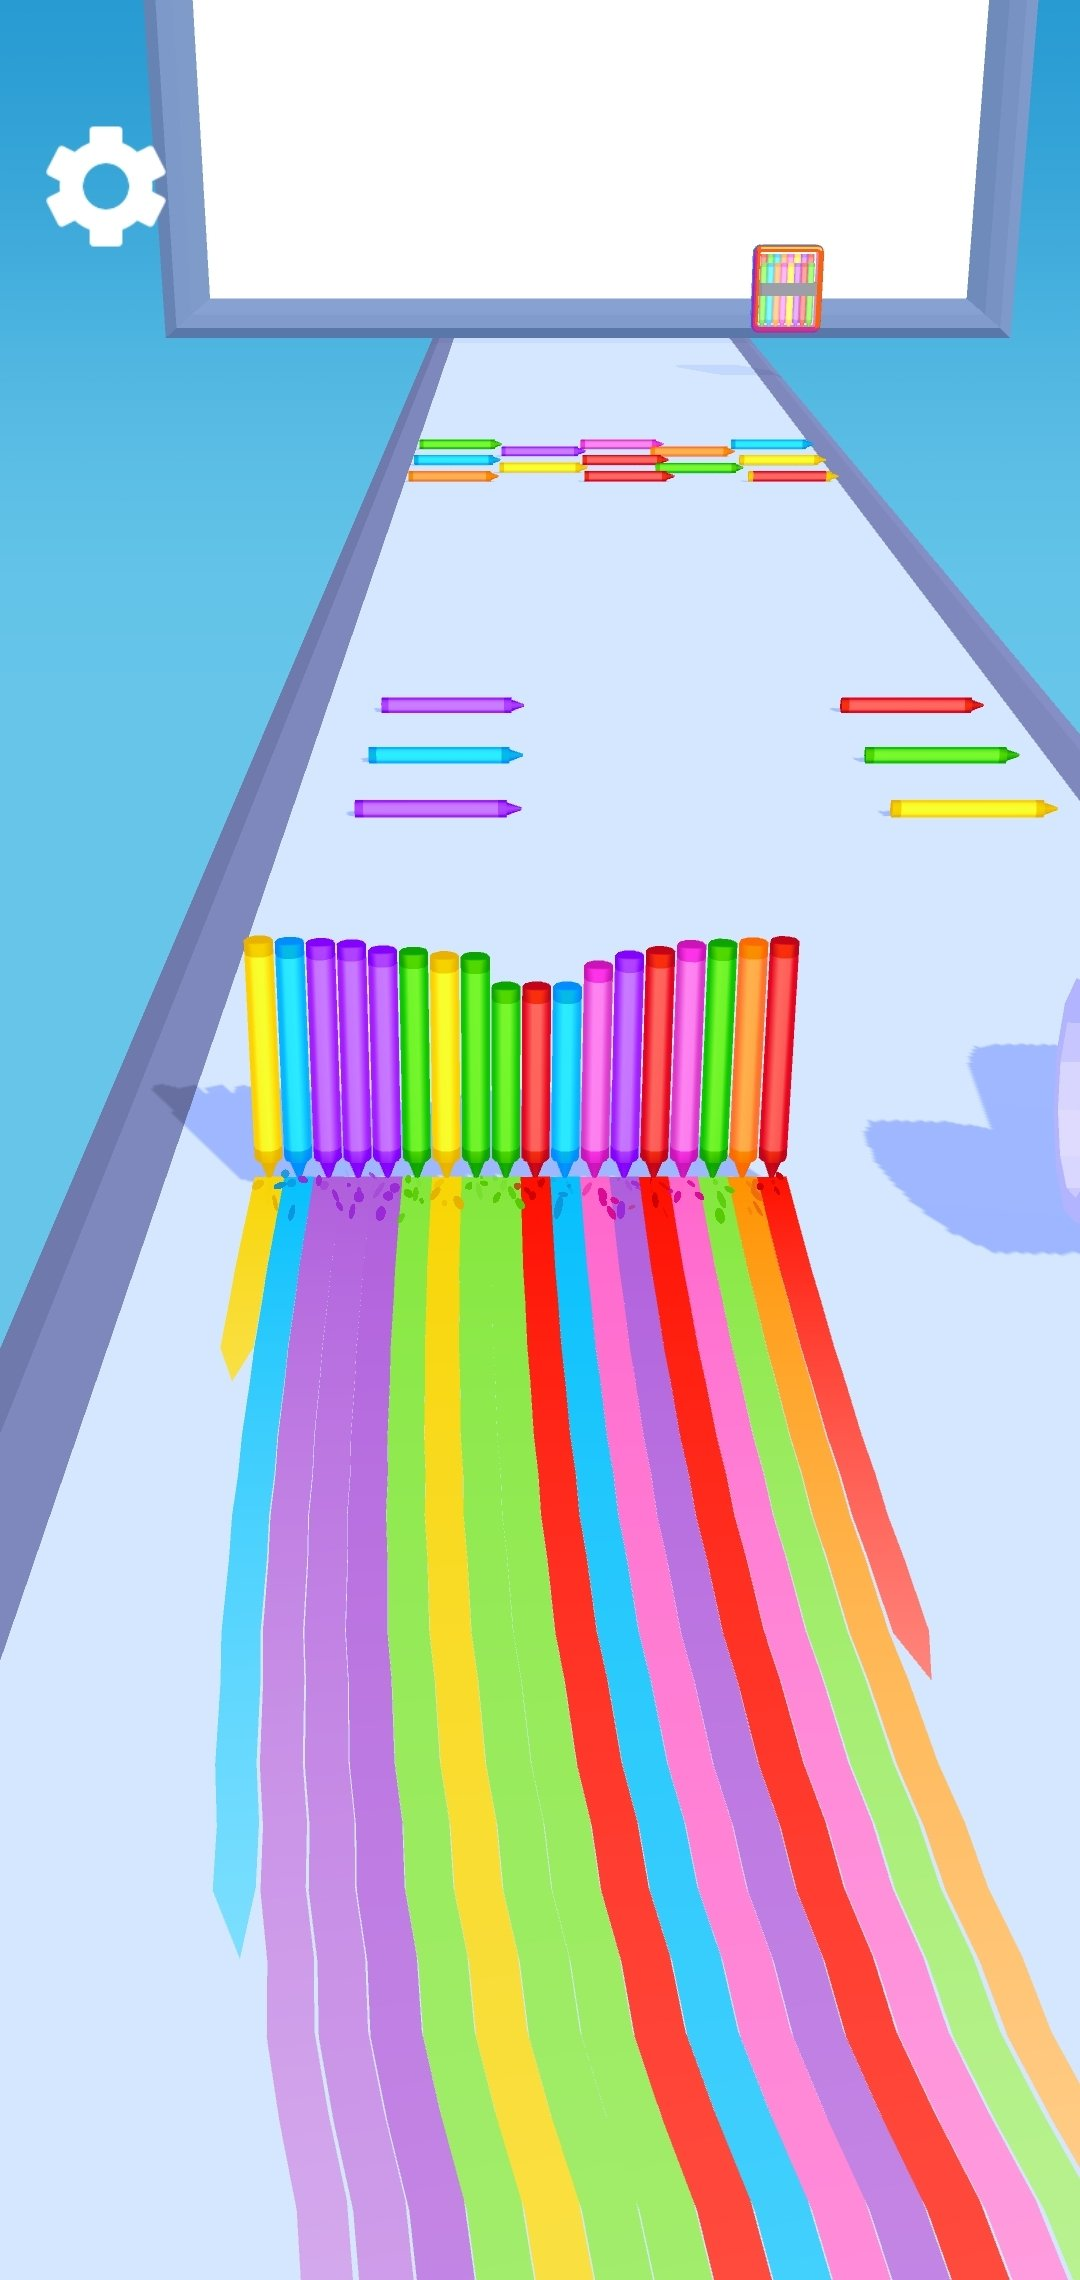 Pencil Rush 3D Mod Apk v0.6.0: Unlock Money, New Update Details and More